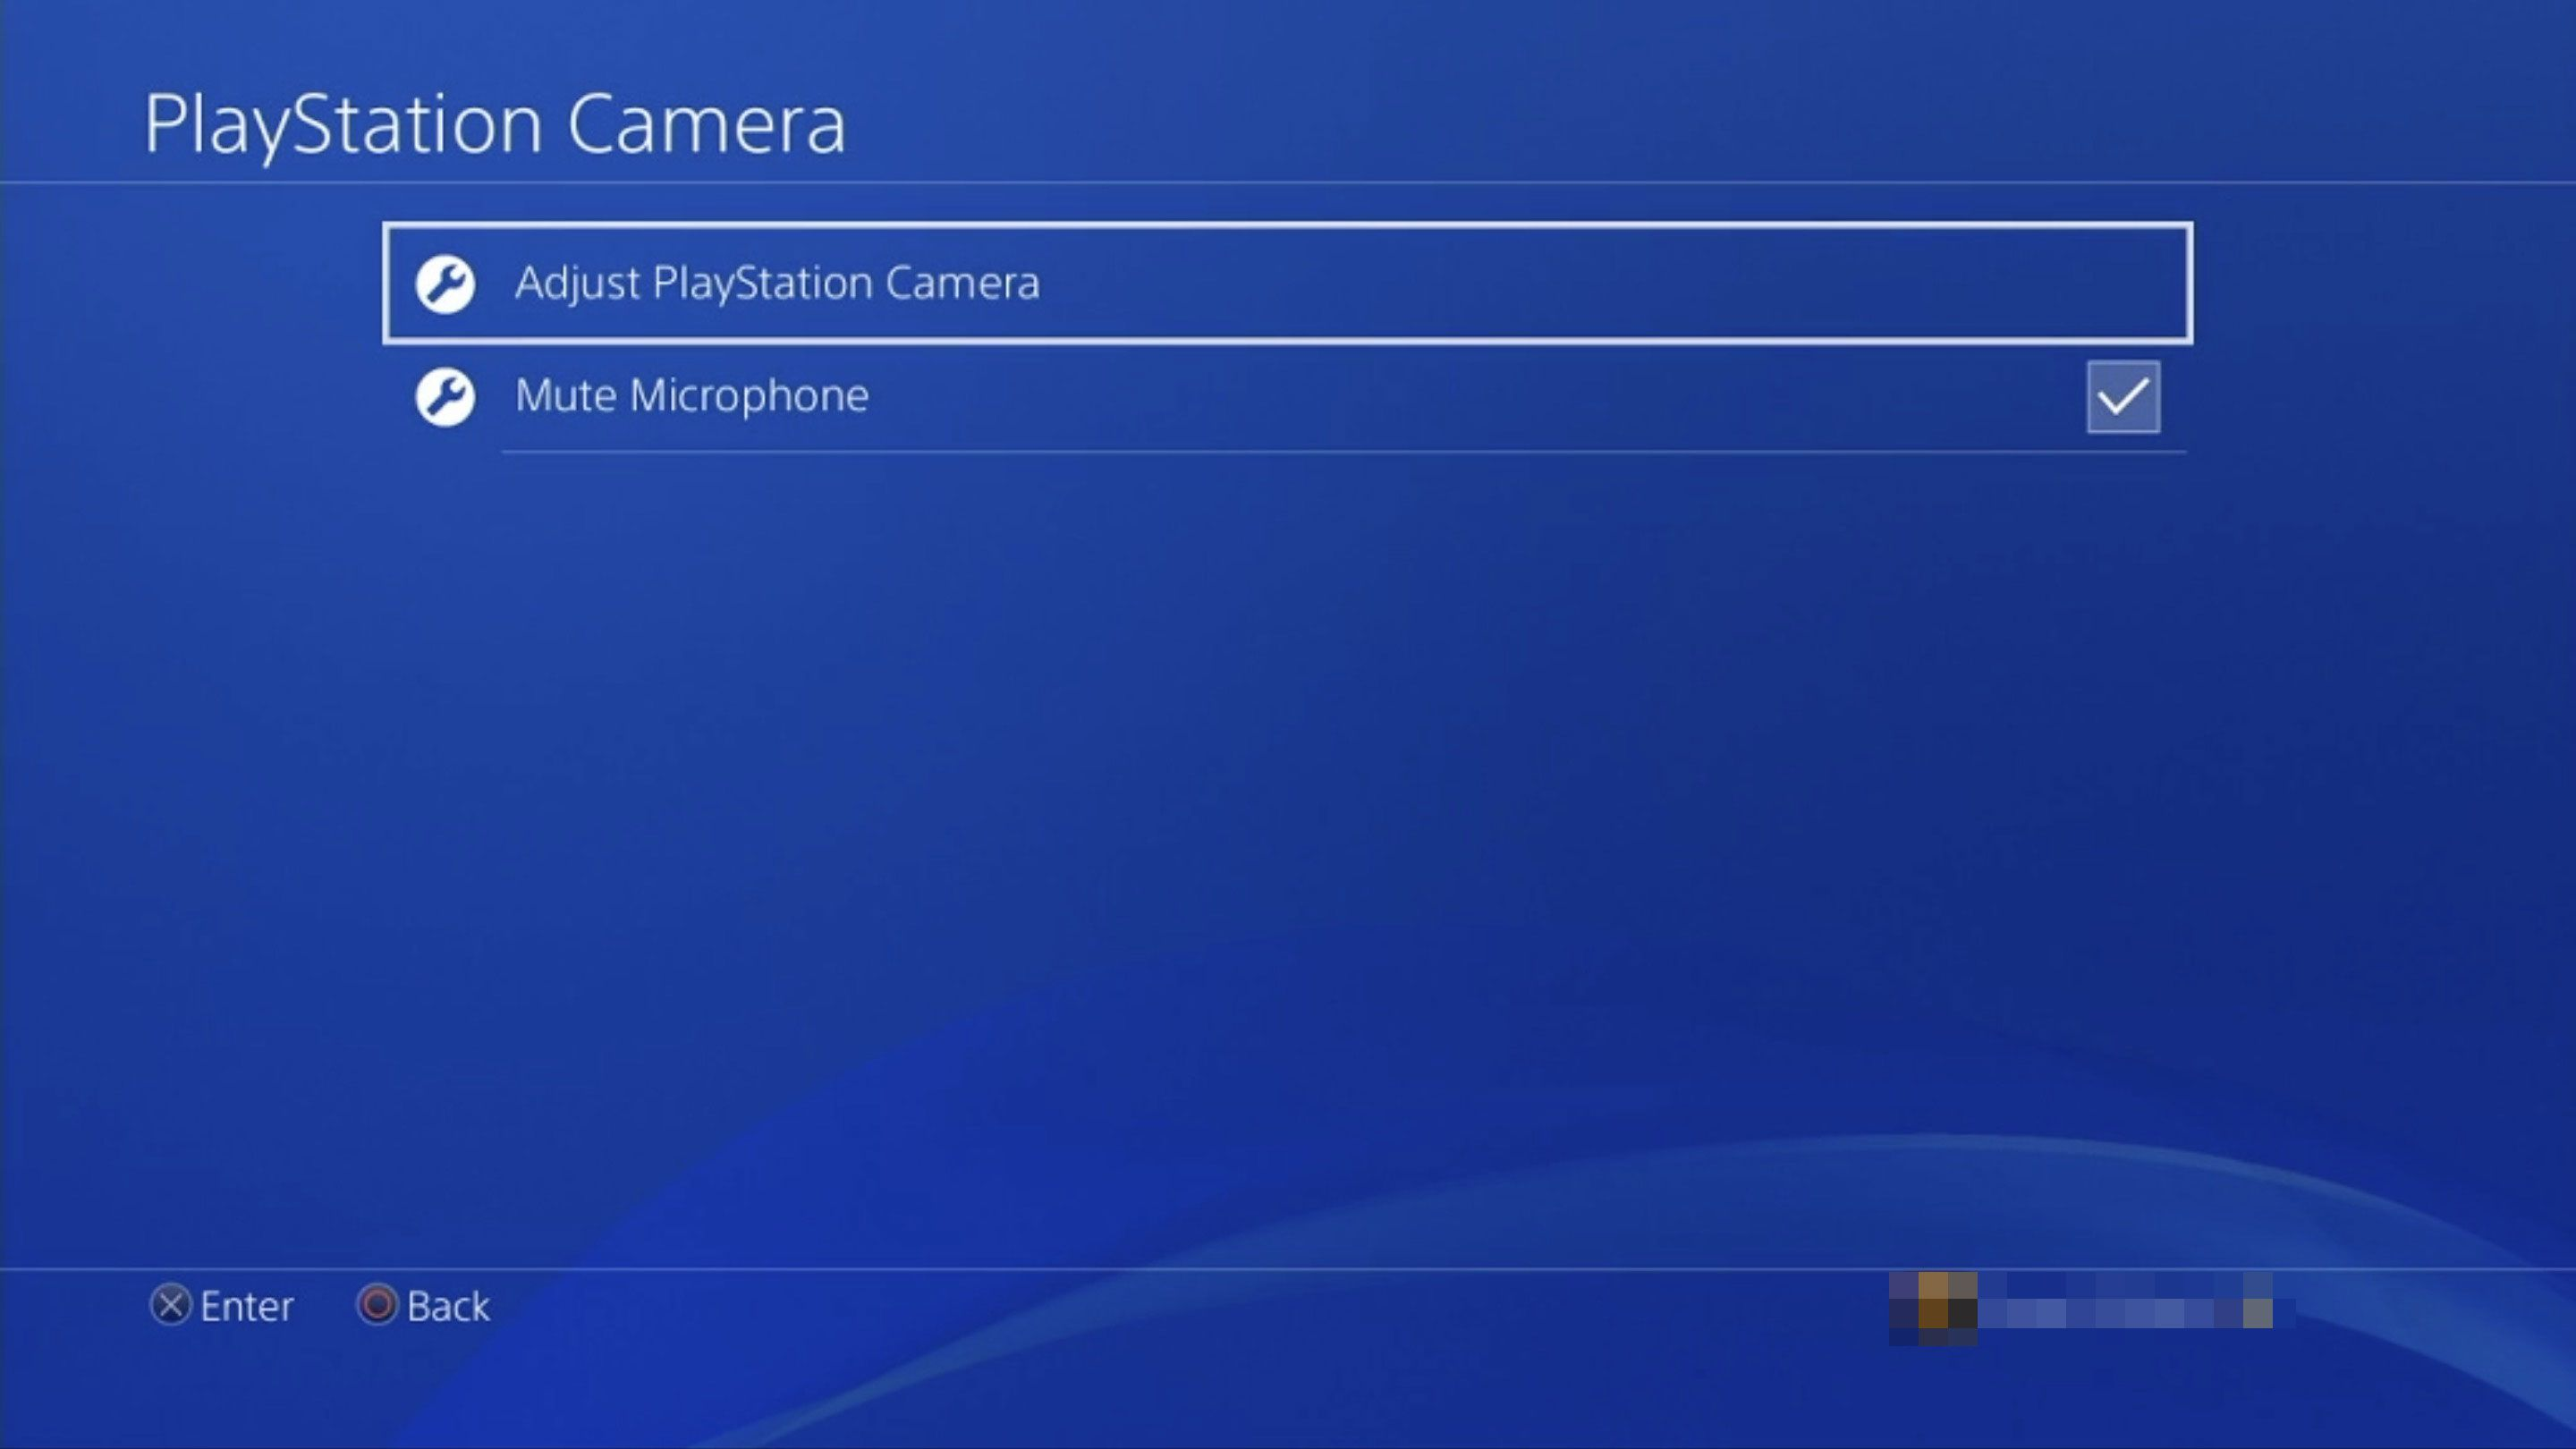 Adjust PlayStation Camera option in PS4 settings